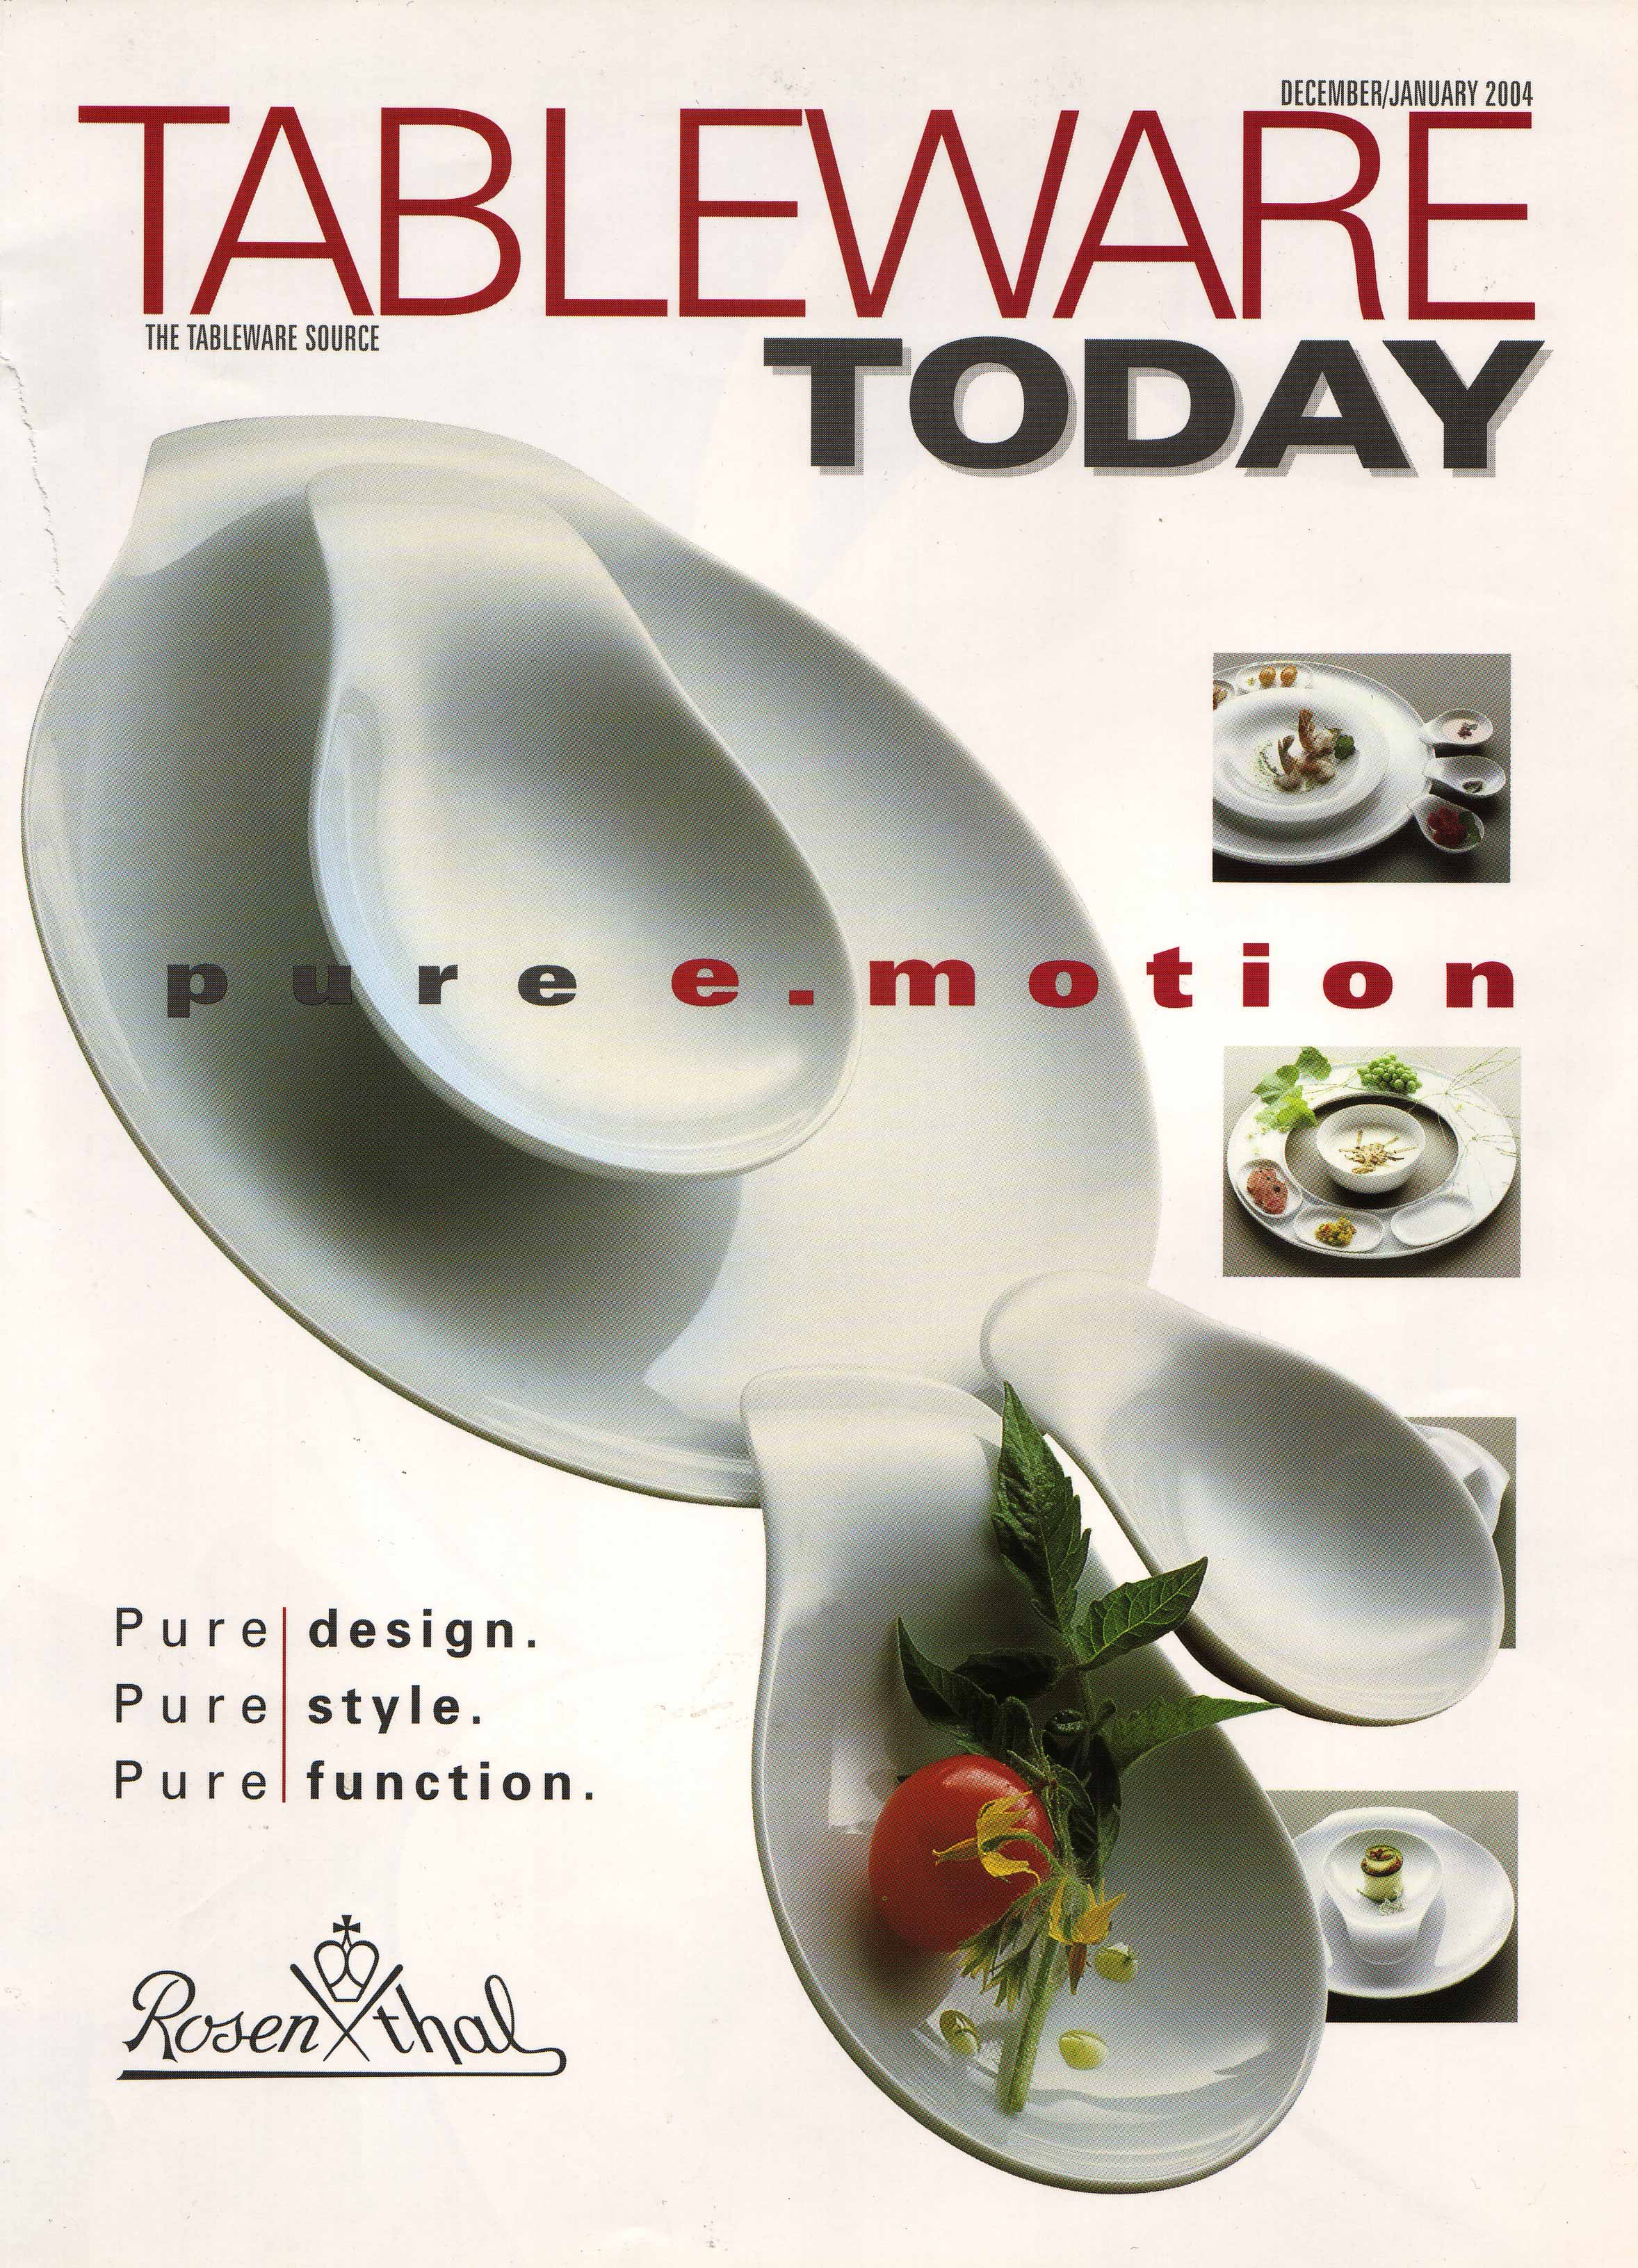 Tableware-Today-December-2004_1